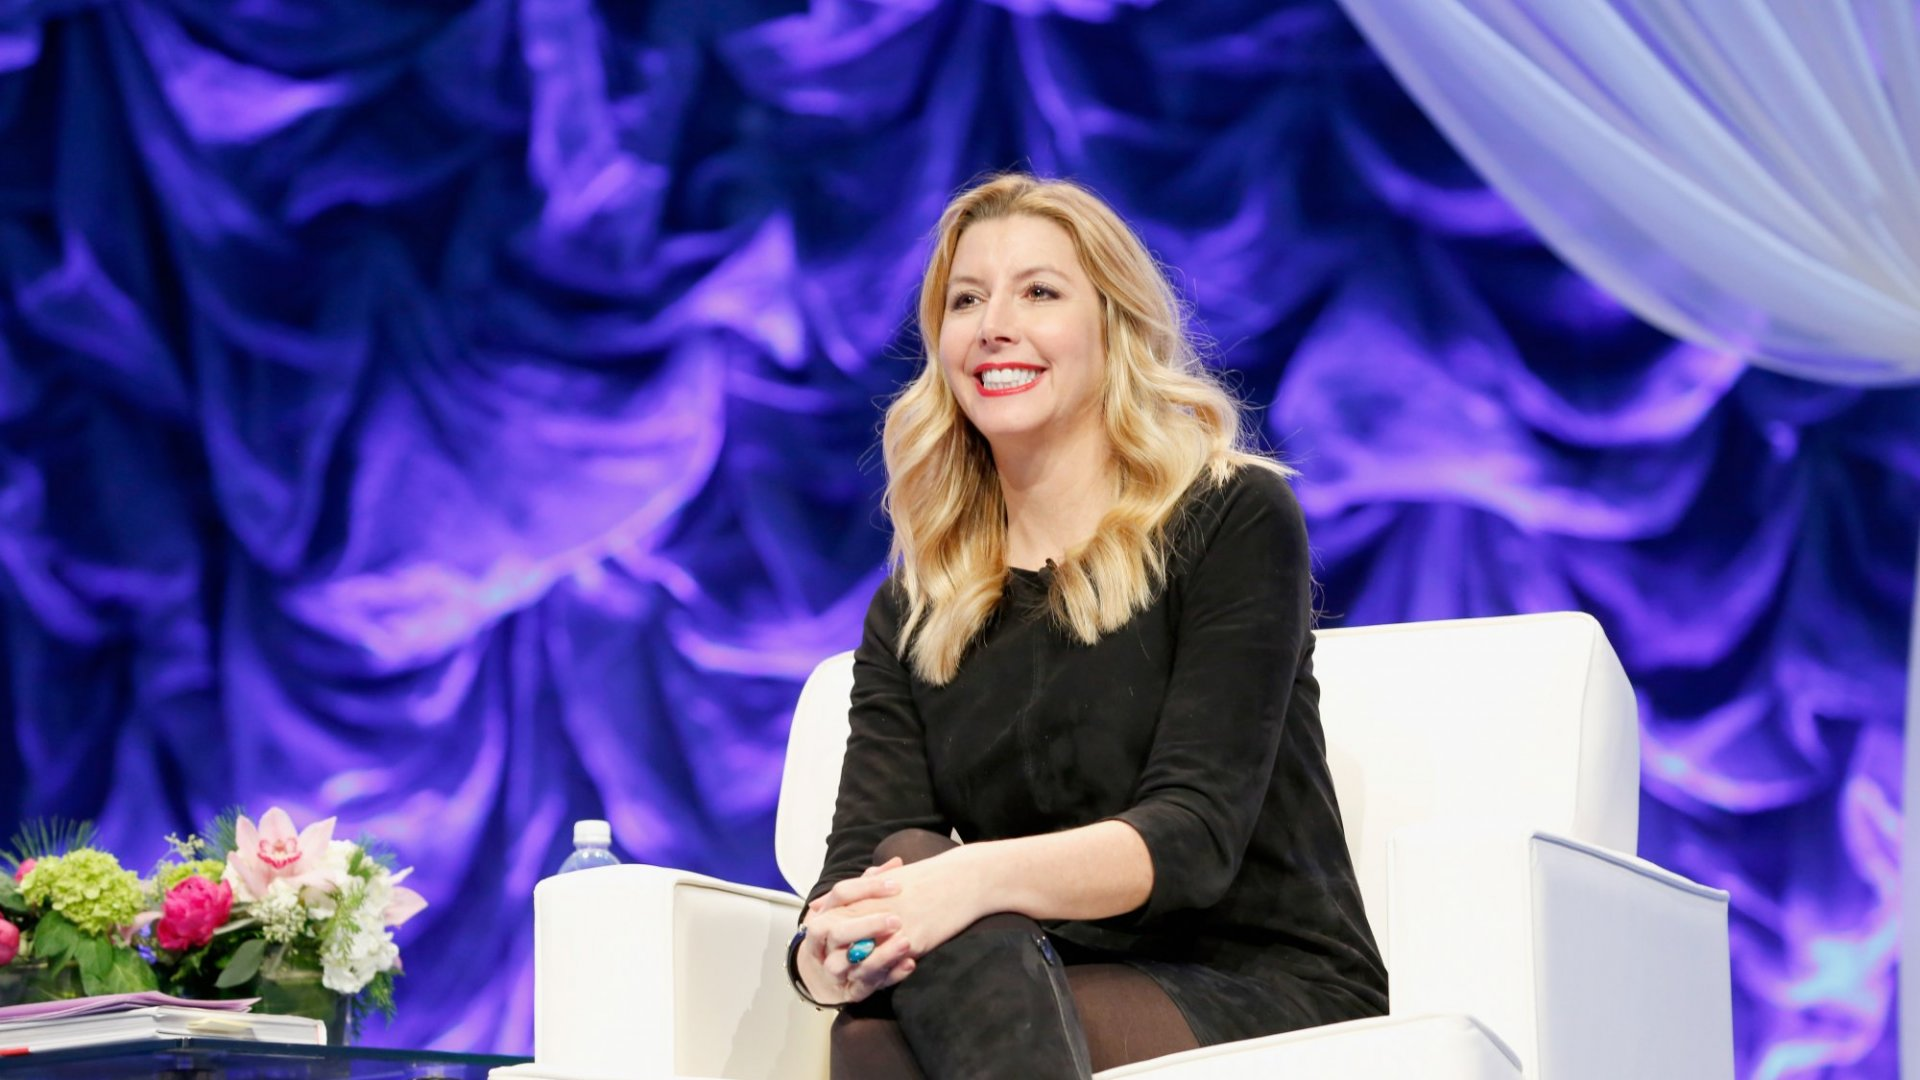 3 Body Language Tips from Billionaire Sara Blakely That Will Make a Great First Impression